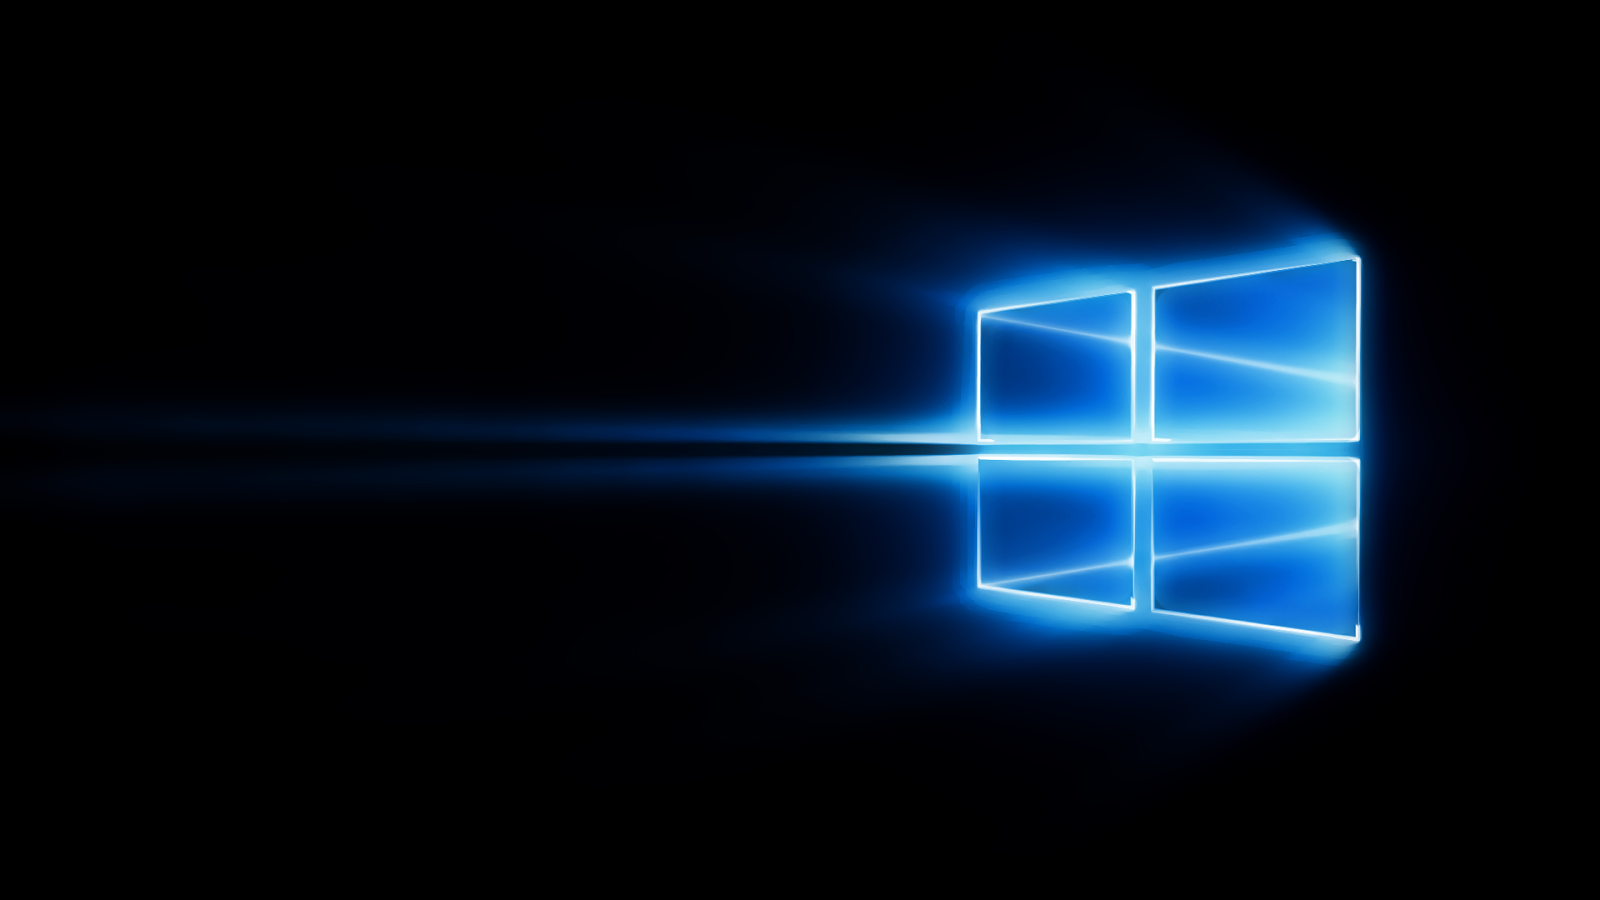 windows 10 hd wallpapers free windows 10 wallpaper free